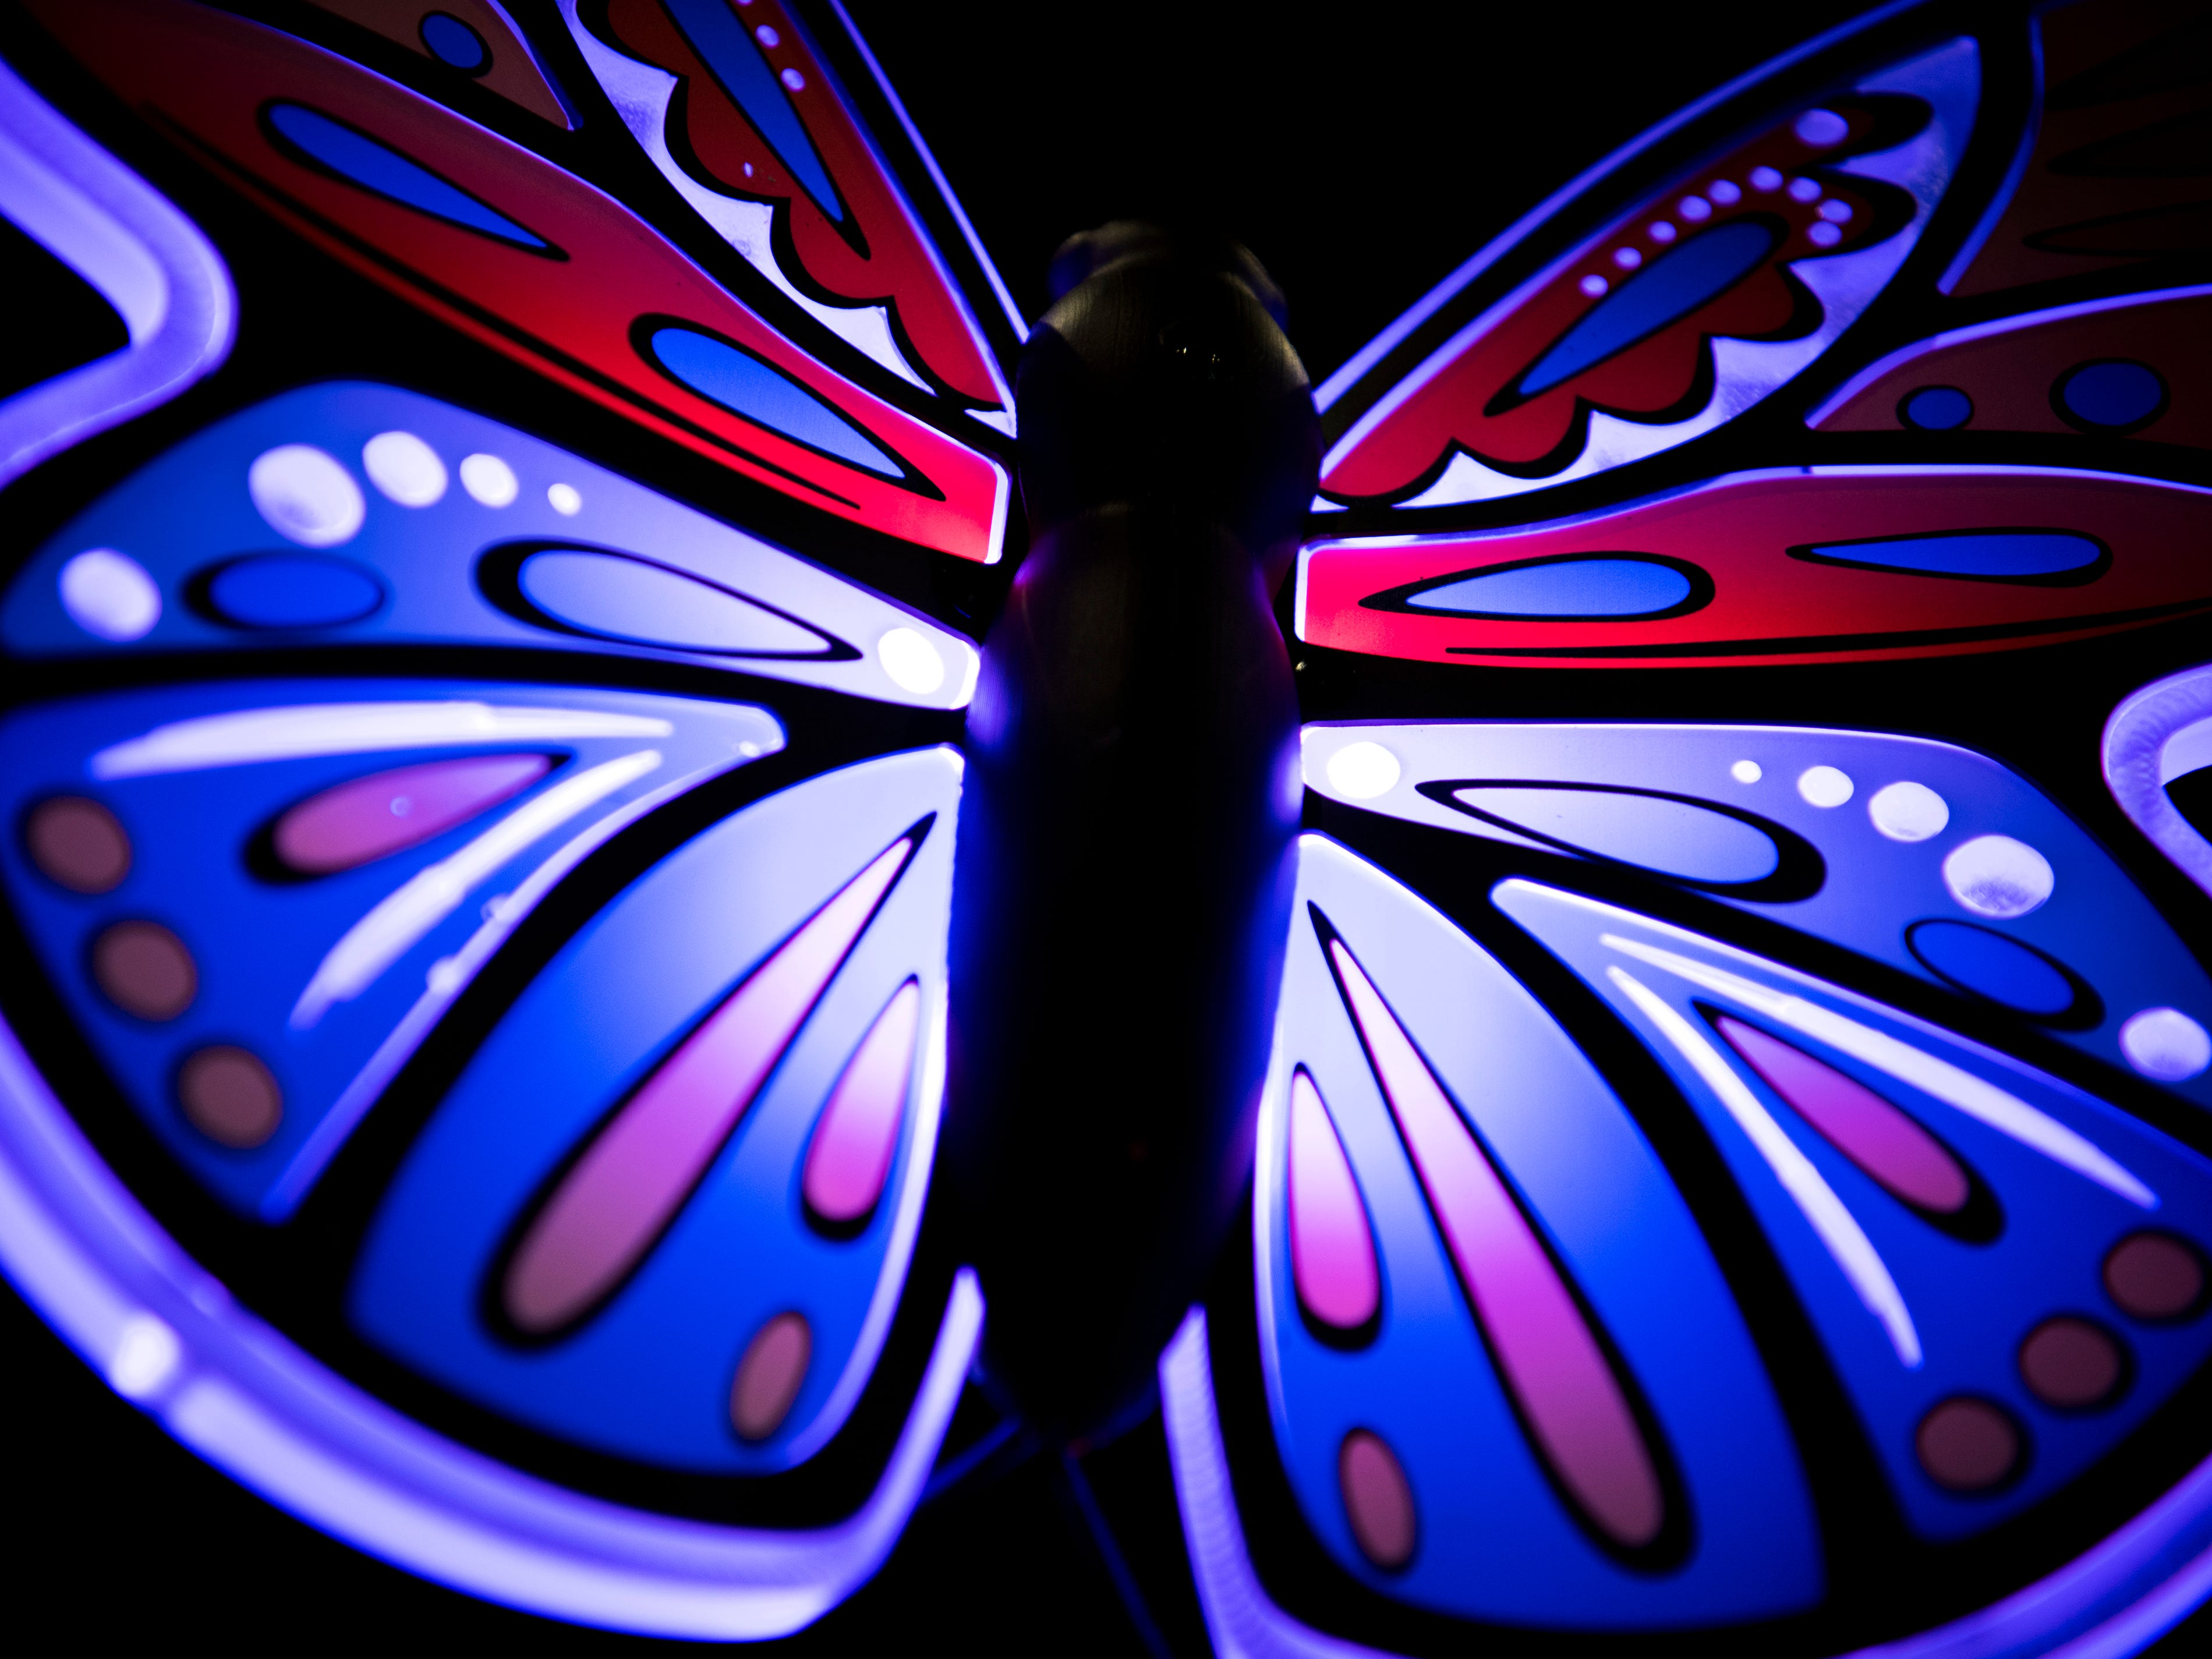 The Wildwood Tree will feature nearly 650 of these lighted butterflies in Dollywood's new Wildwood Grove area of the park on Tuesday, February 19, 2019.